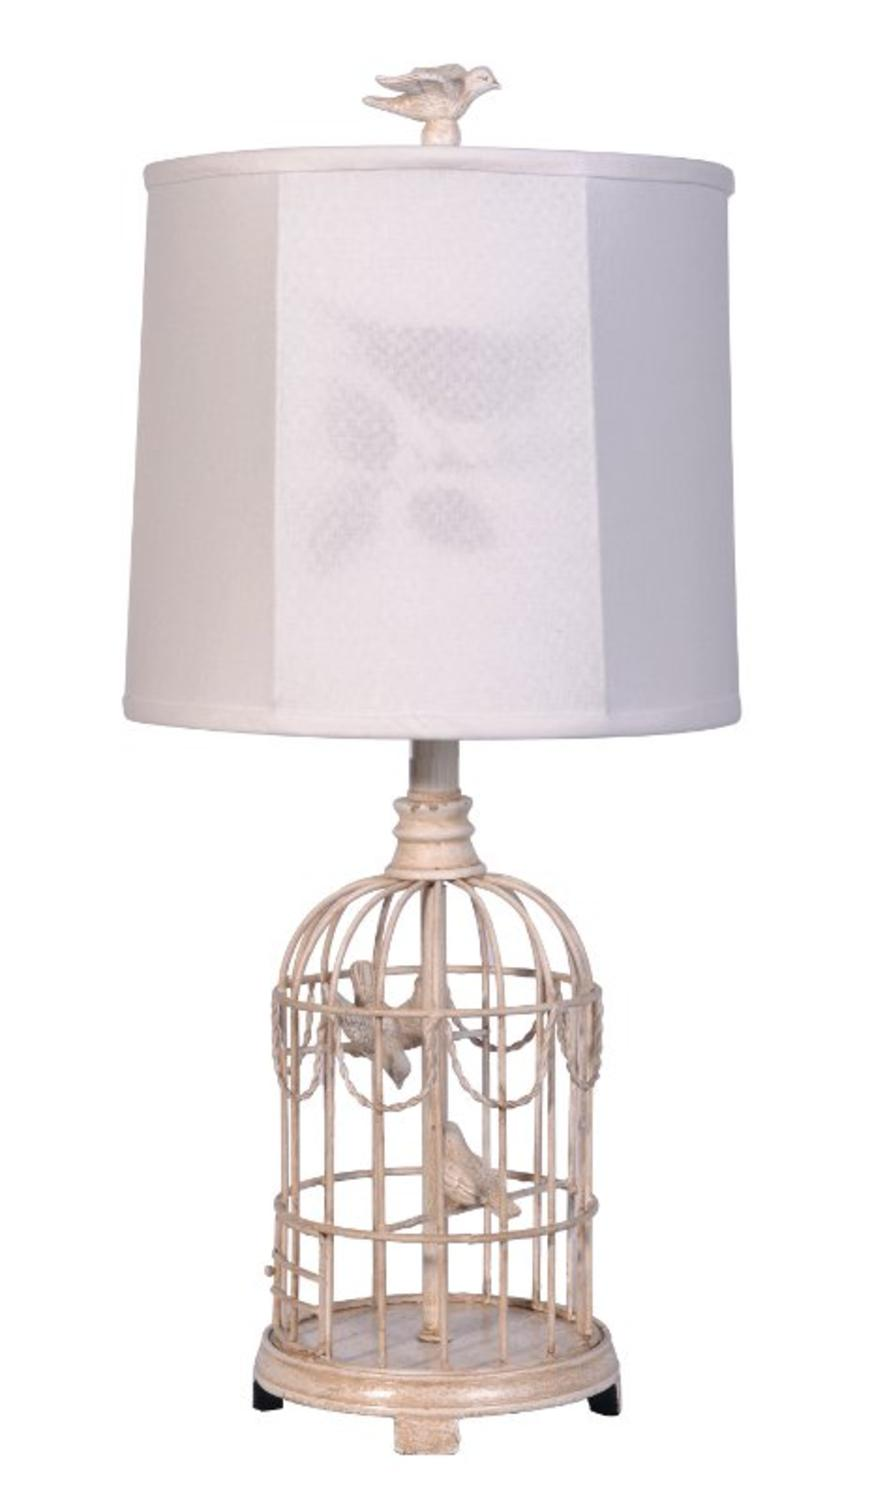 Set of 2 country cottage bird cage table lamps with white fabric set of 2 country cottage bird cage table lamps with white fabric shadow shades walmart geotapseo Image collections